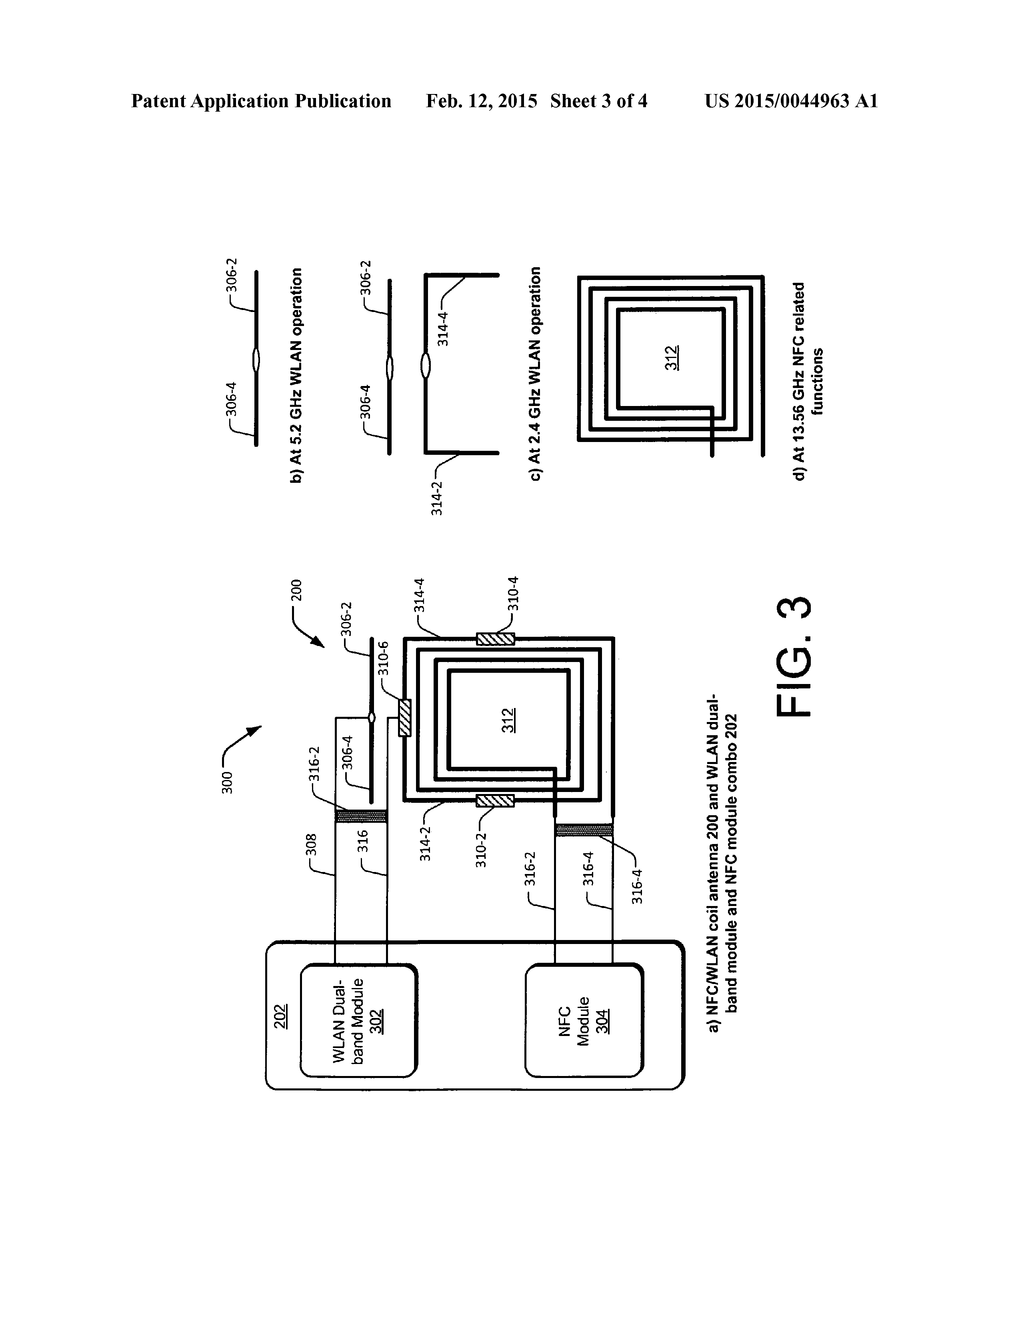 Wireless Antenna Diagram Electrical Wiring Power Schematic Near Field Communications Nfc Coil With Embedded Ford